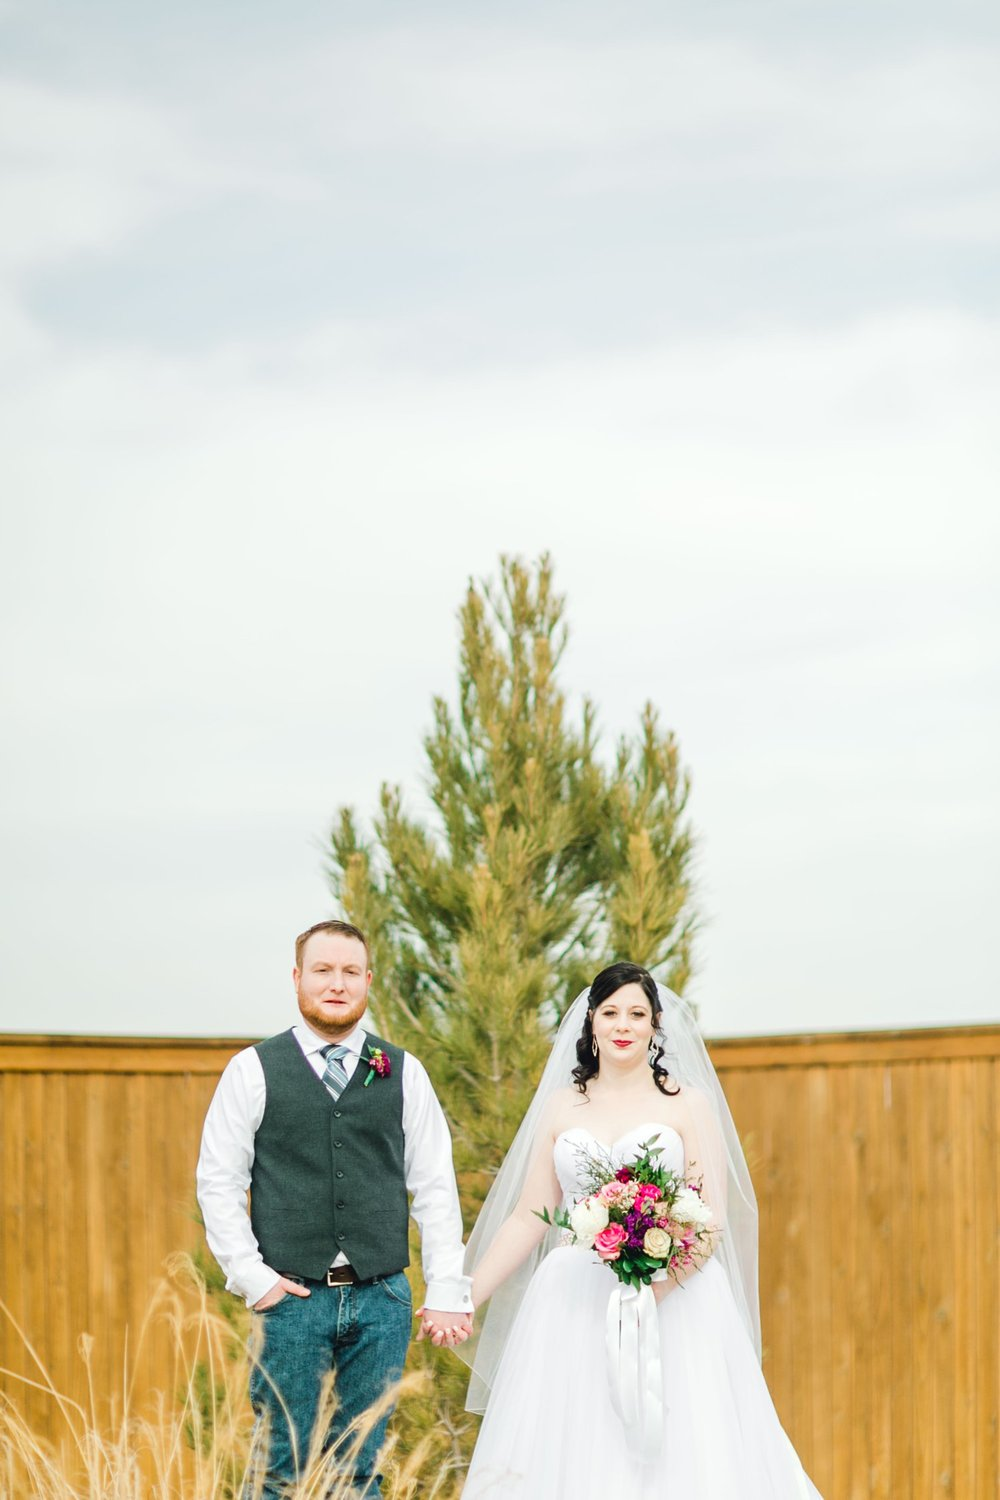 Autumn-Oaks-Events-Morgan-Andy-Lane-Wedding-Lubbock-Photography__0036.jpg